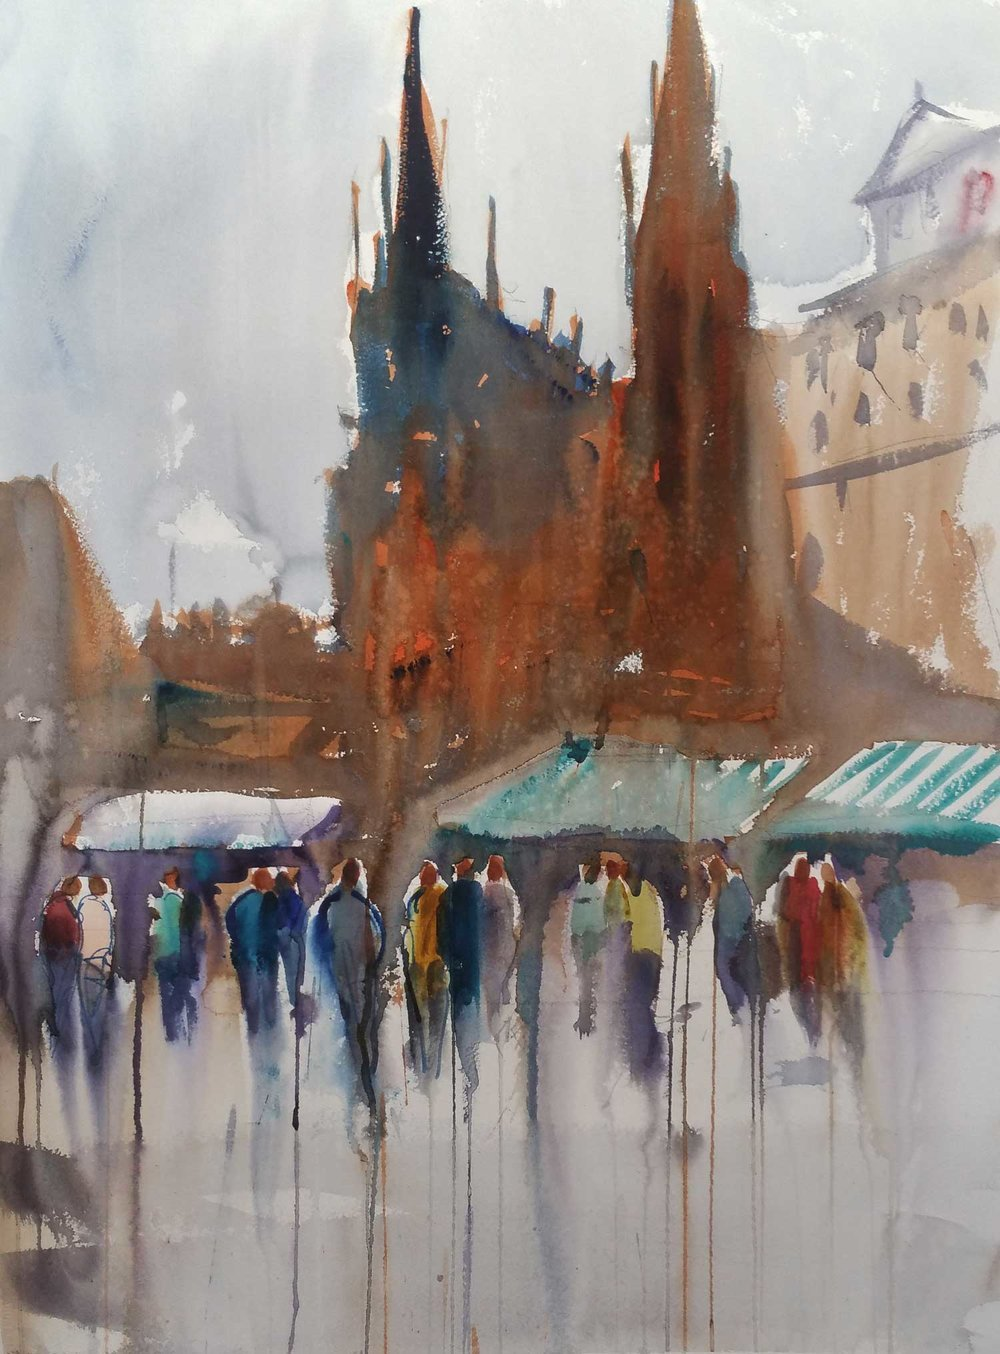 Prague Square 54 x 72 cm